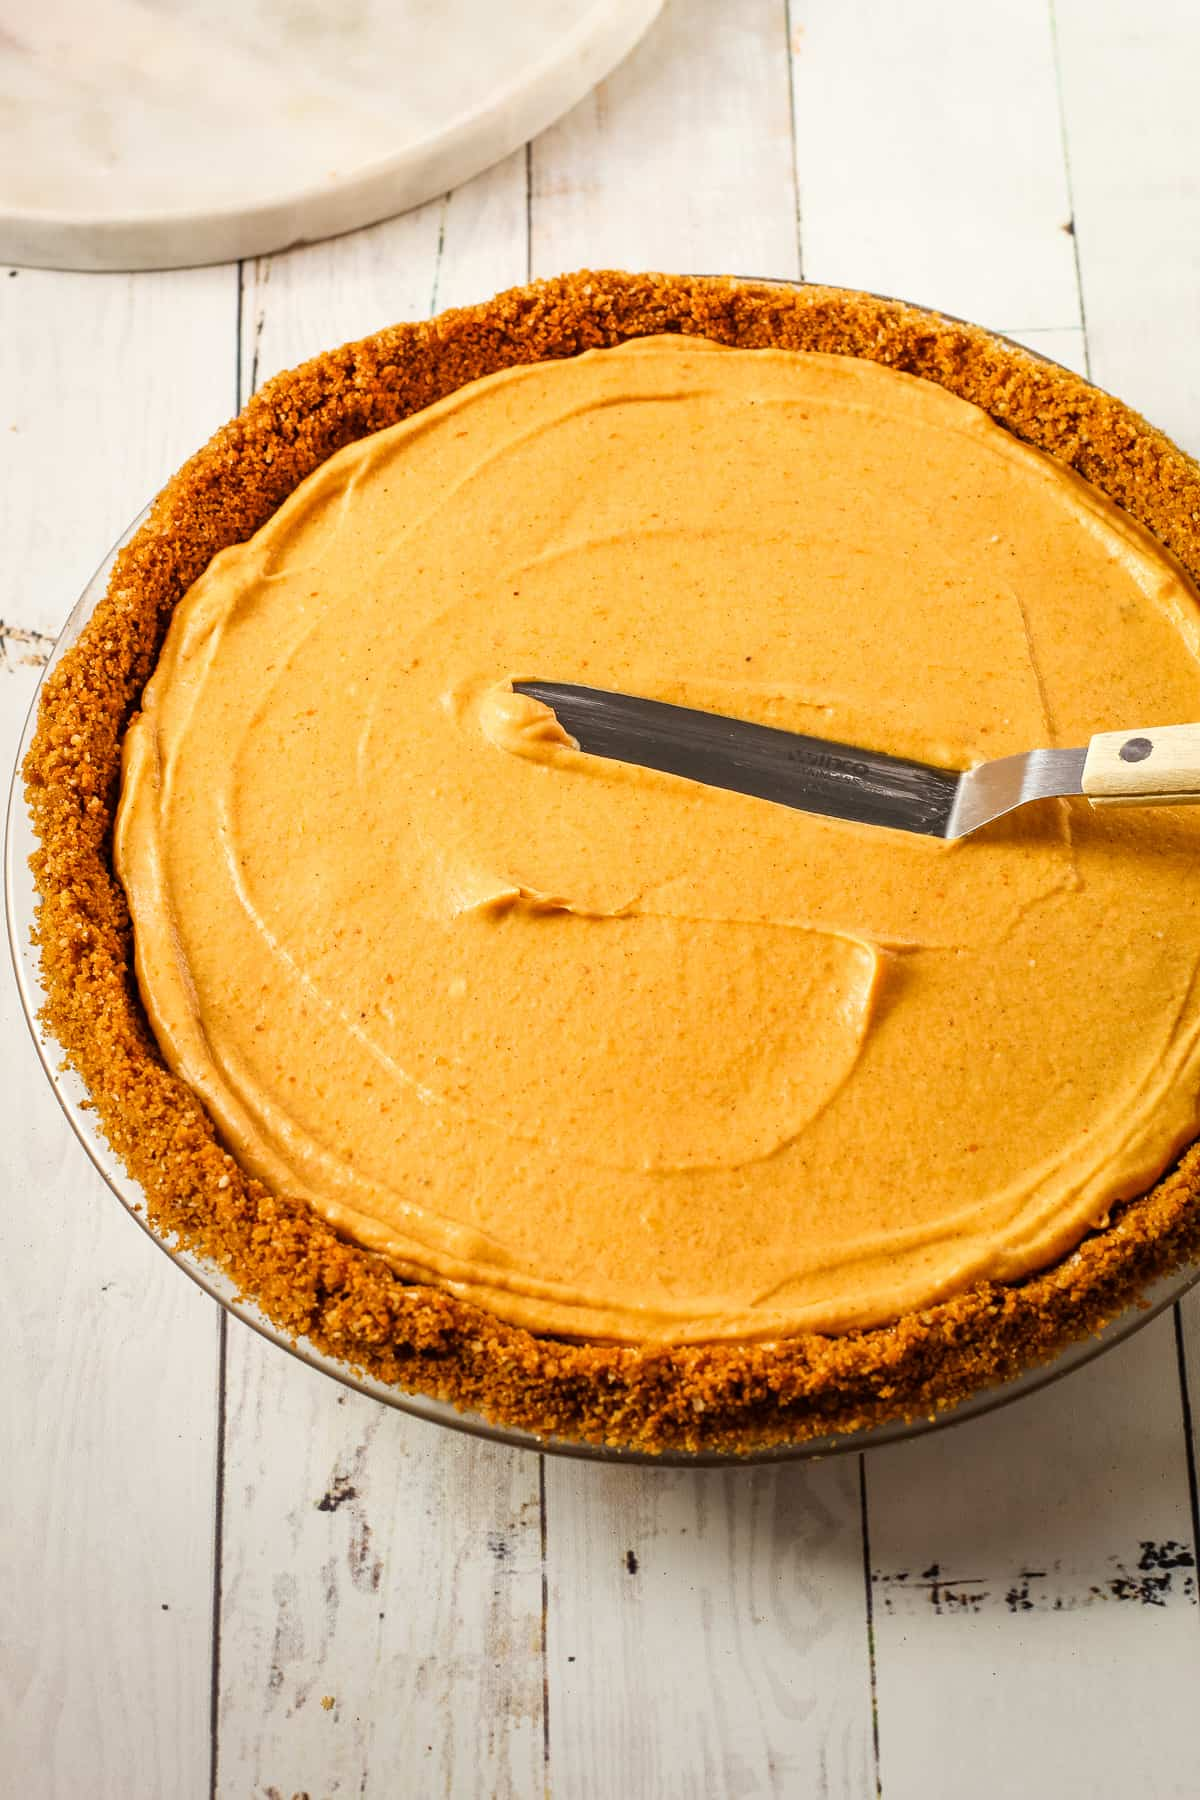 Smoothing over no bake pumpkin pie filling.